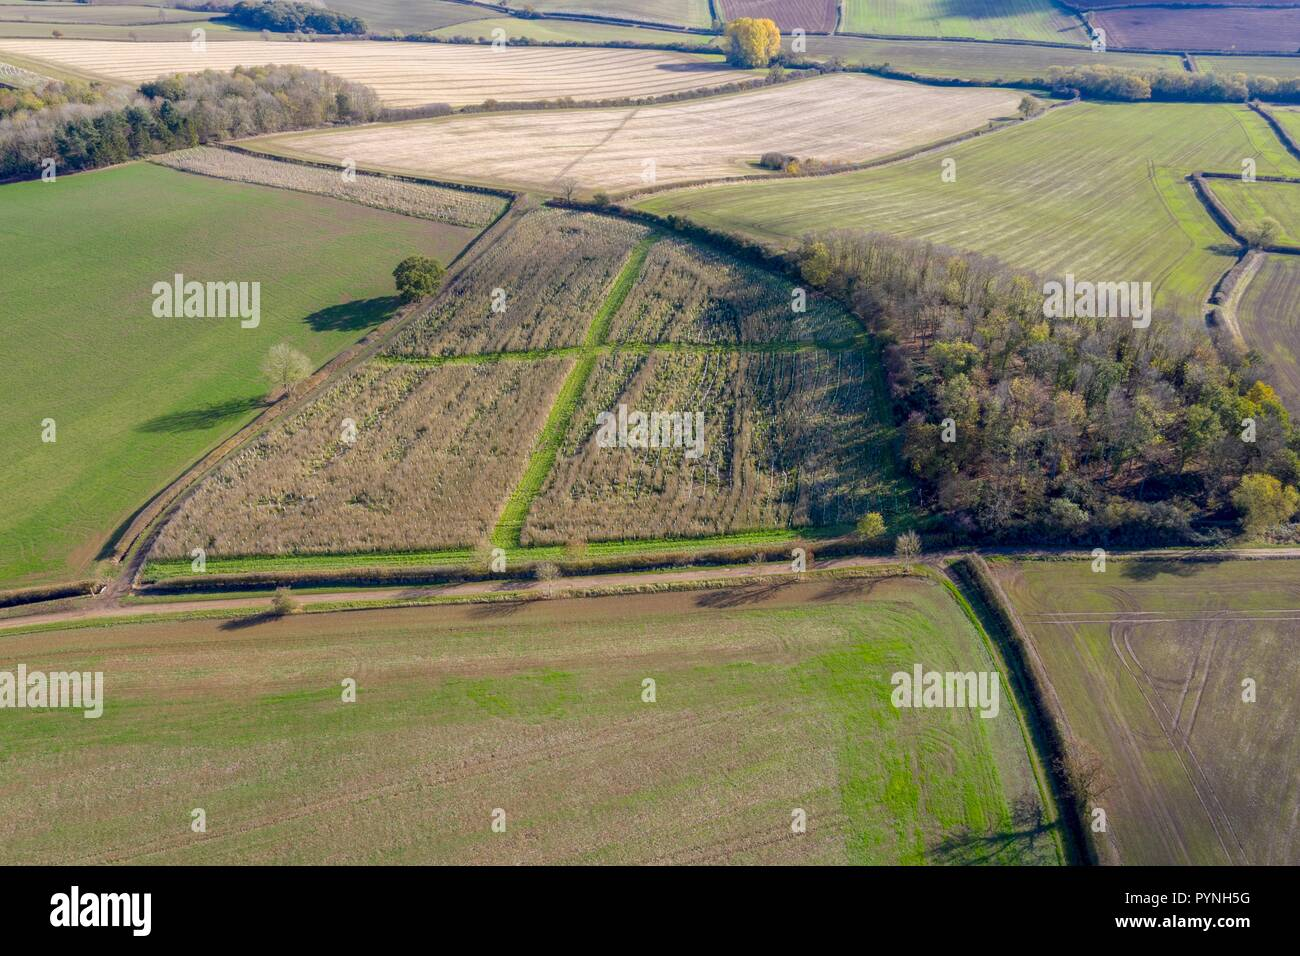 Government funded Countryside Stewardship Scheme Tree Planting. - Stock Image